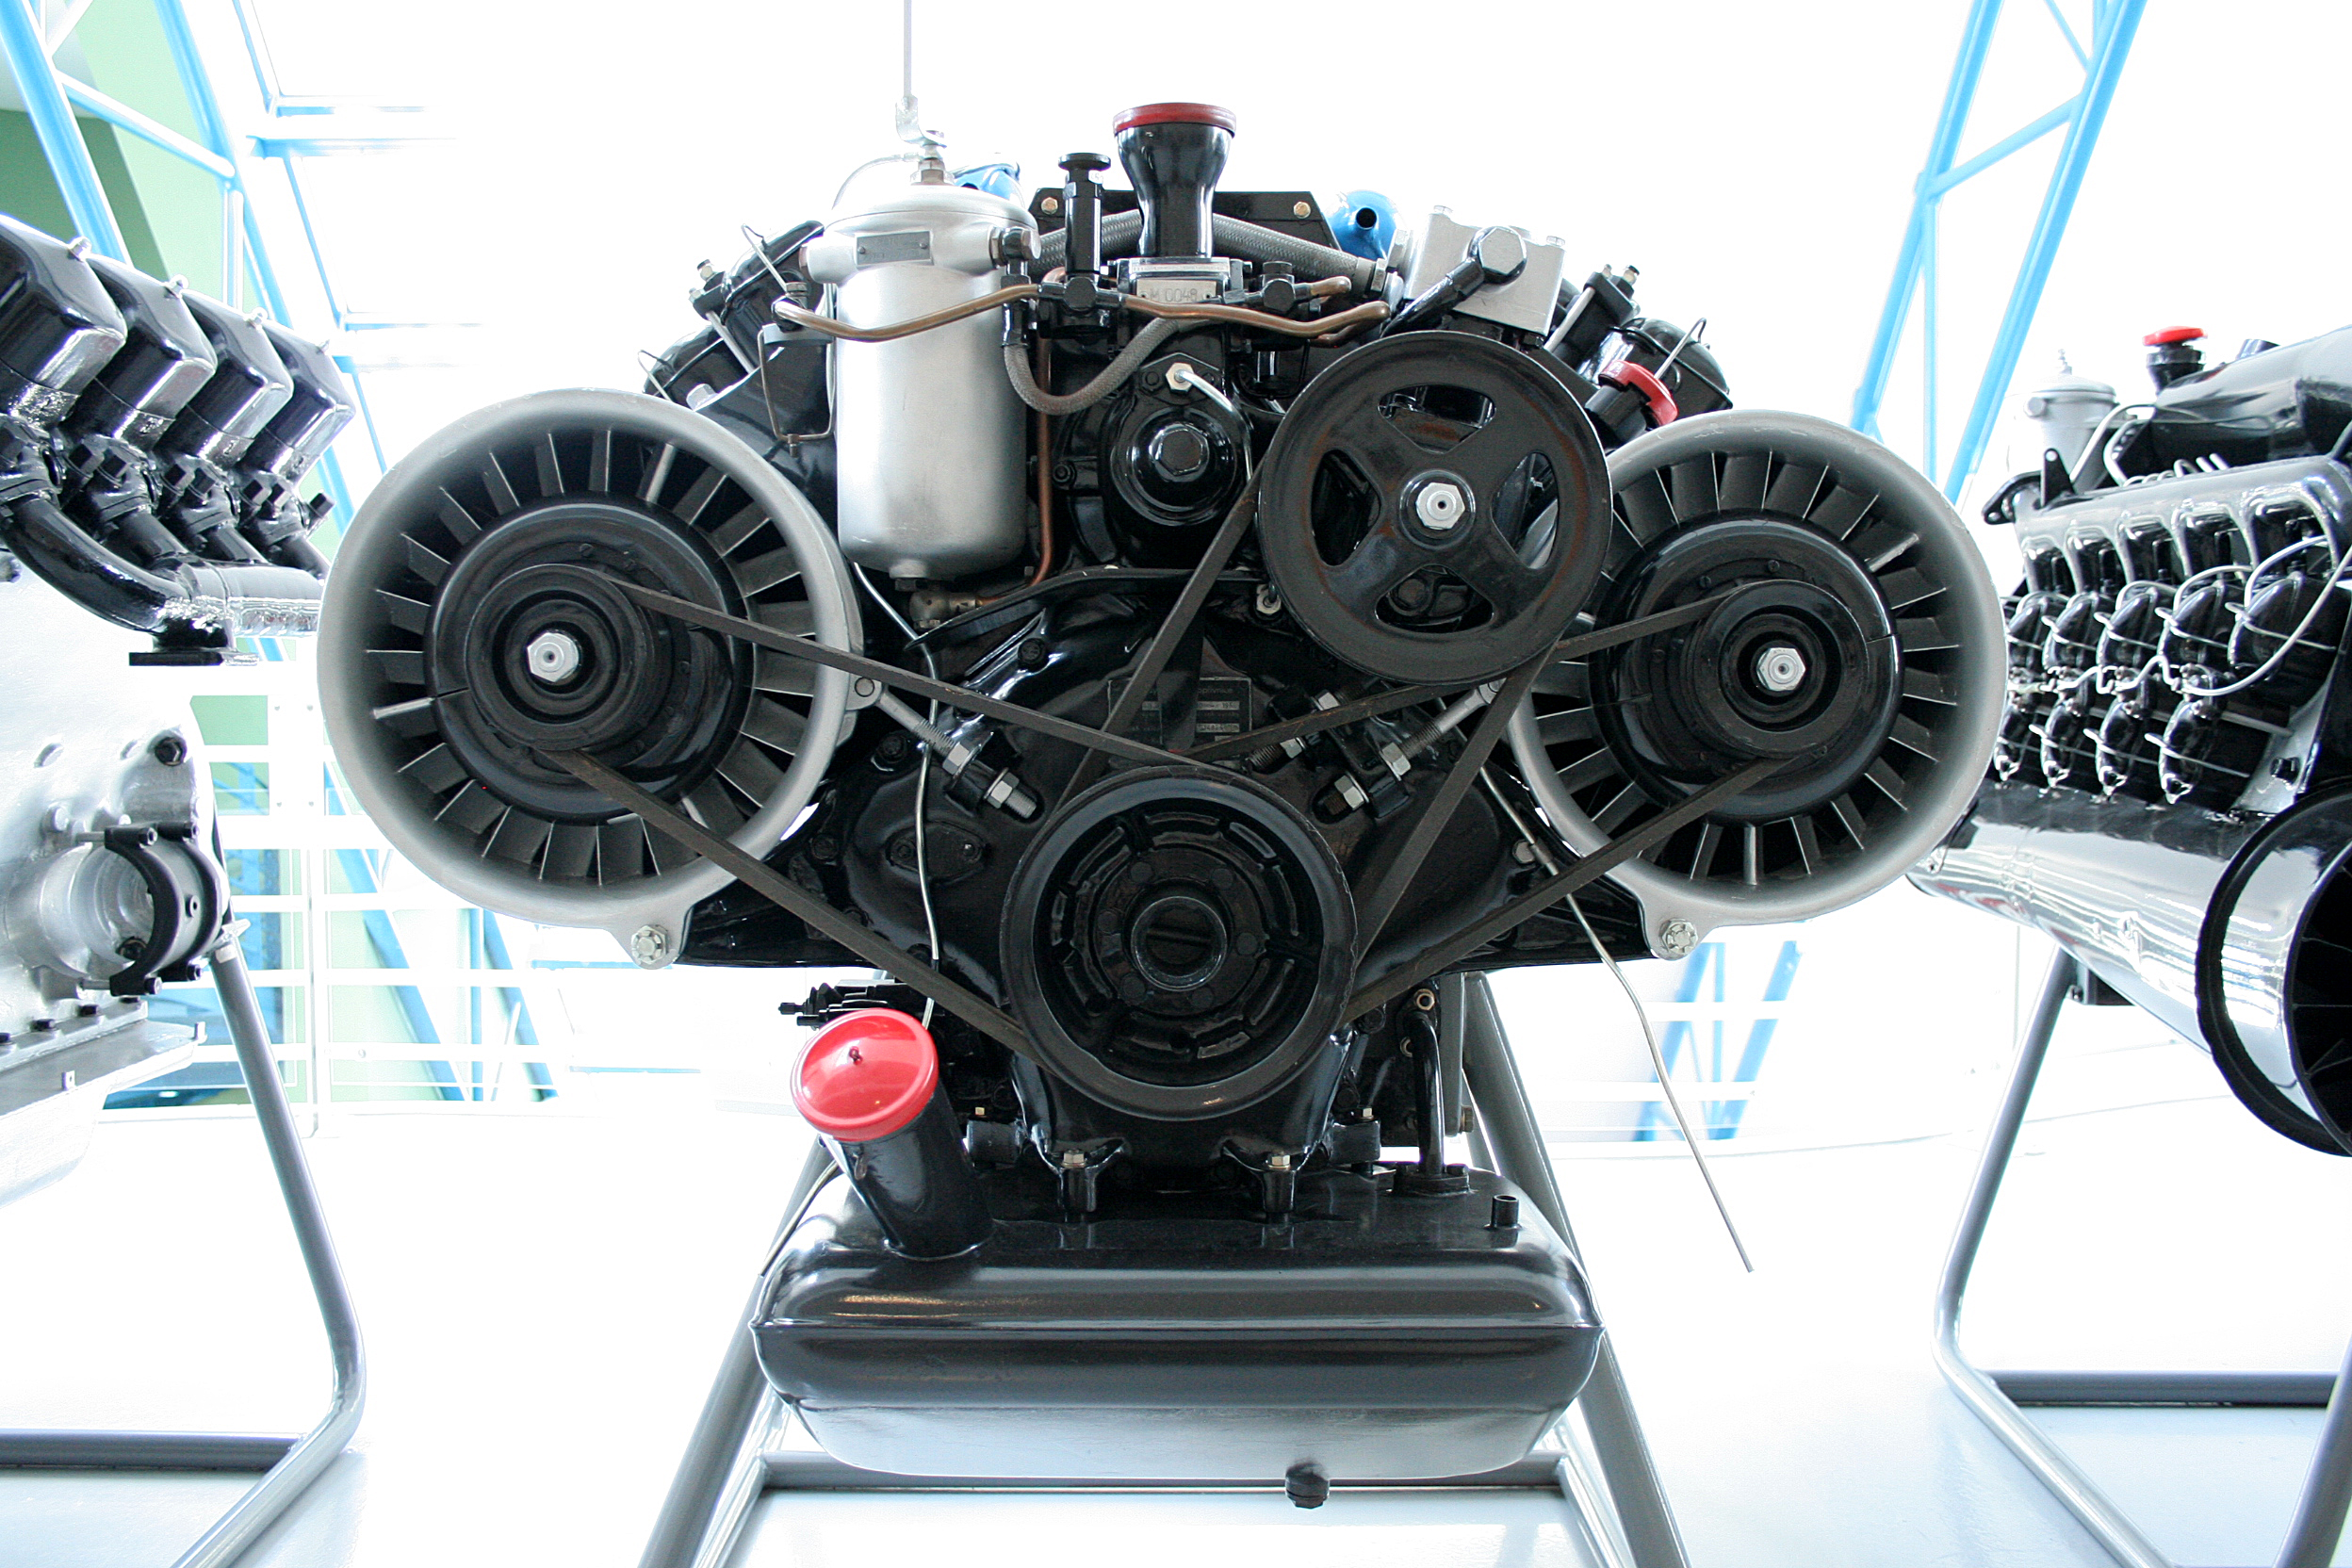 Large Diesel Engine